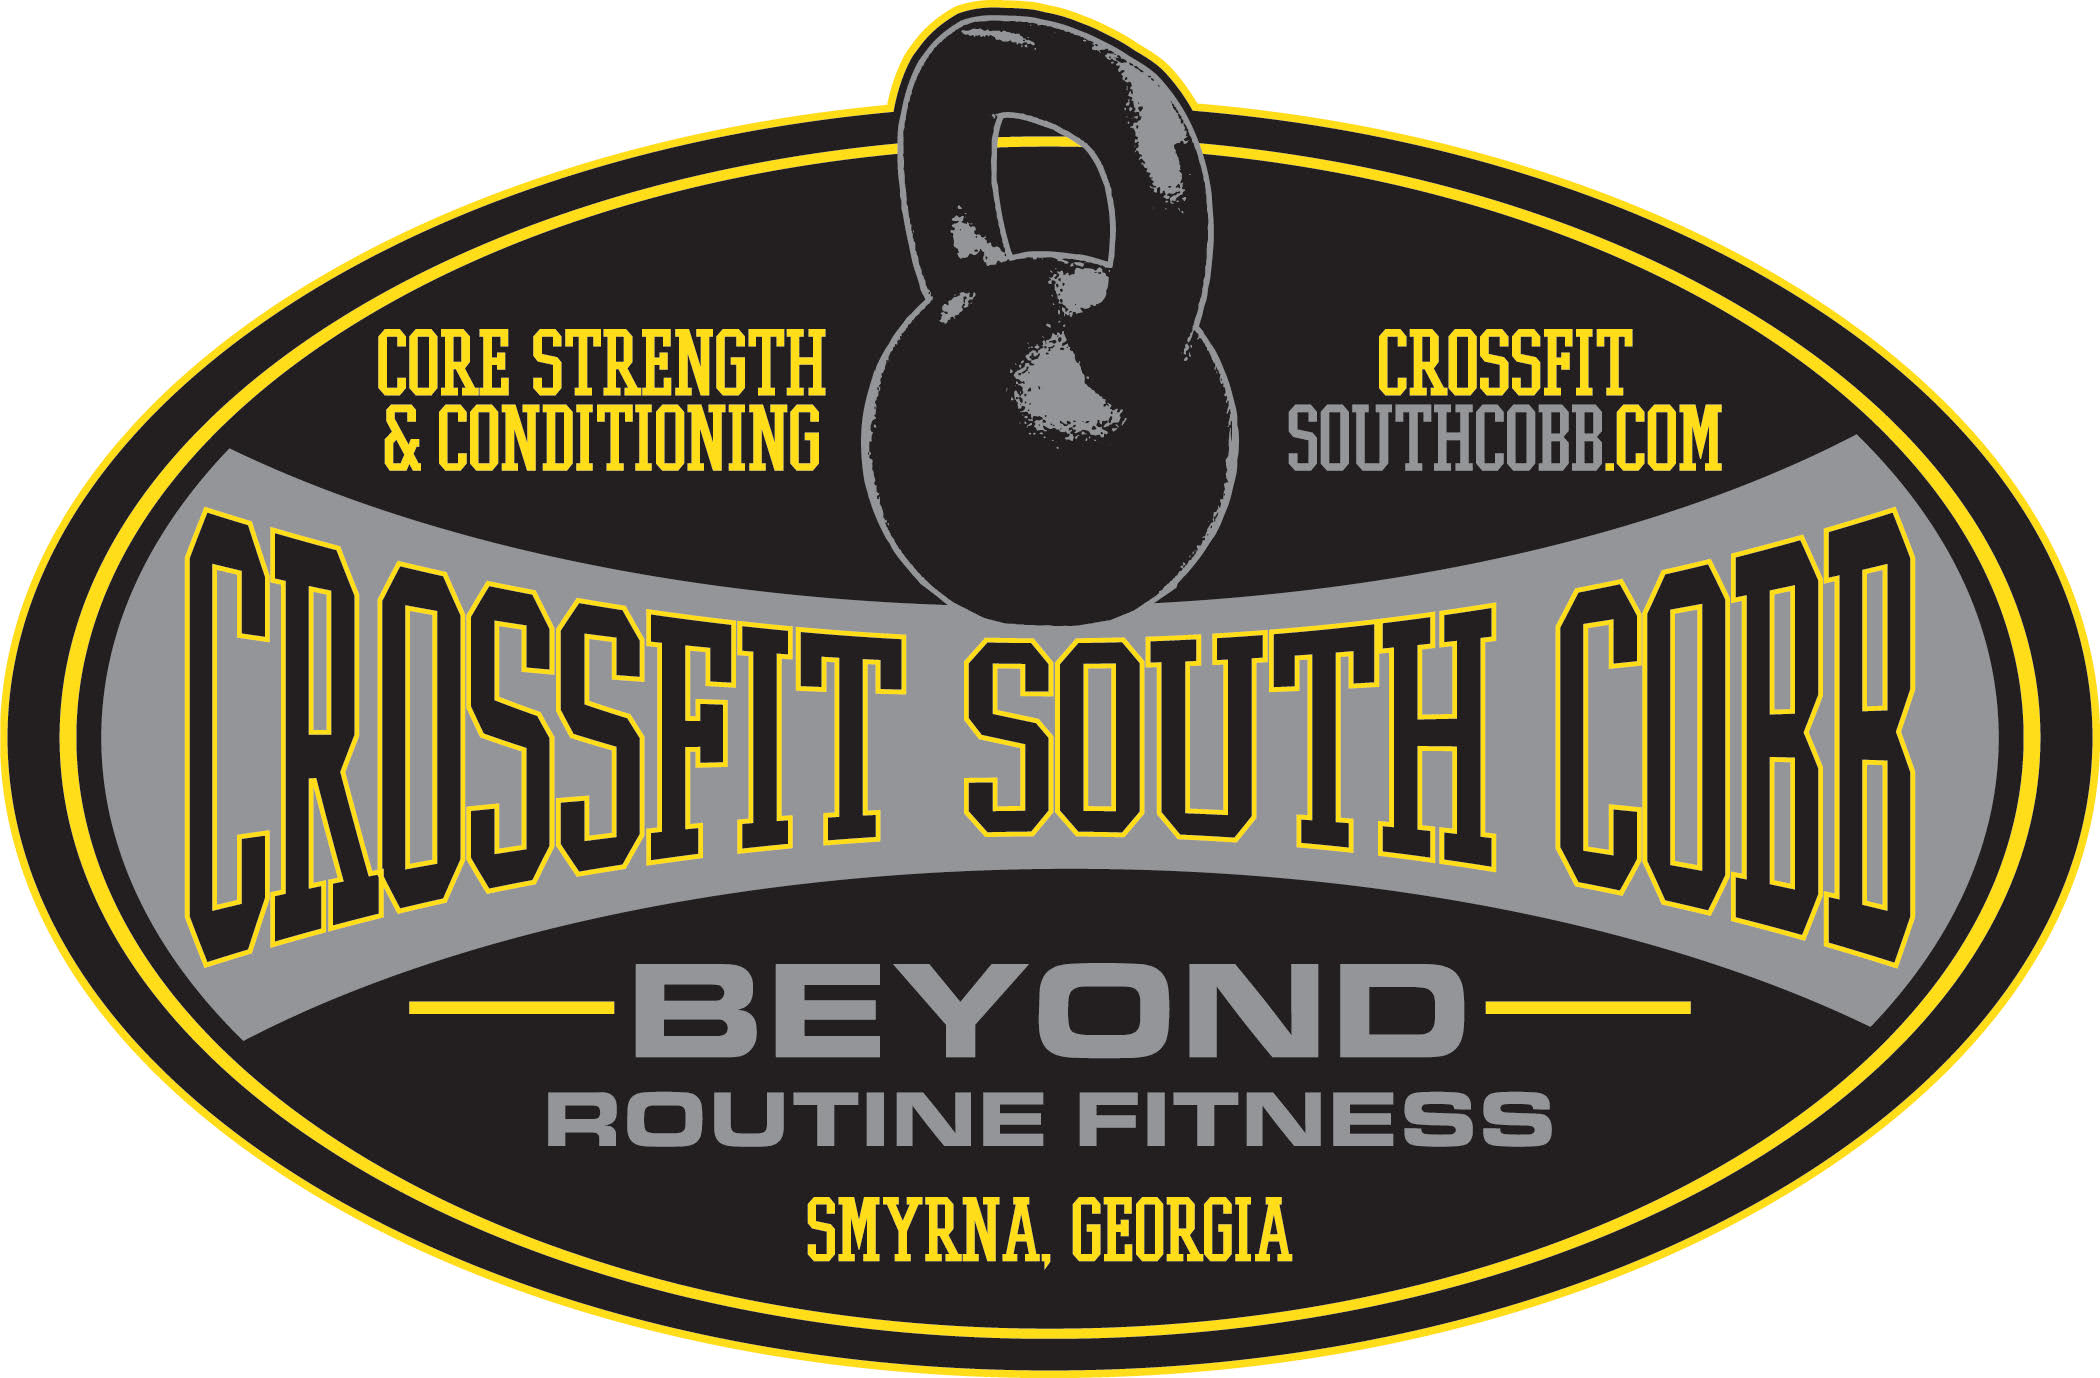 CrossFit South Cobb logo